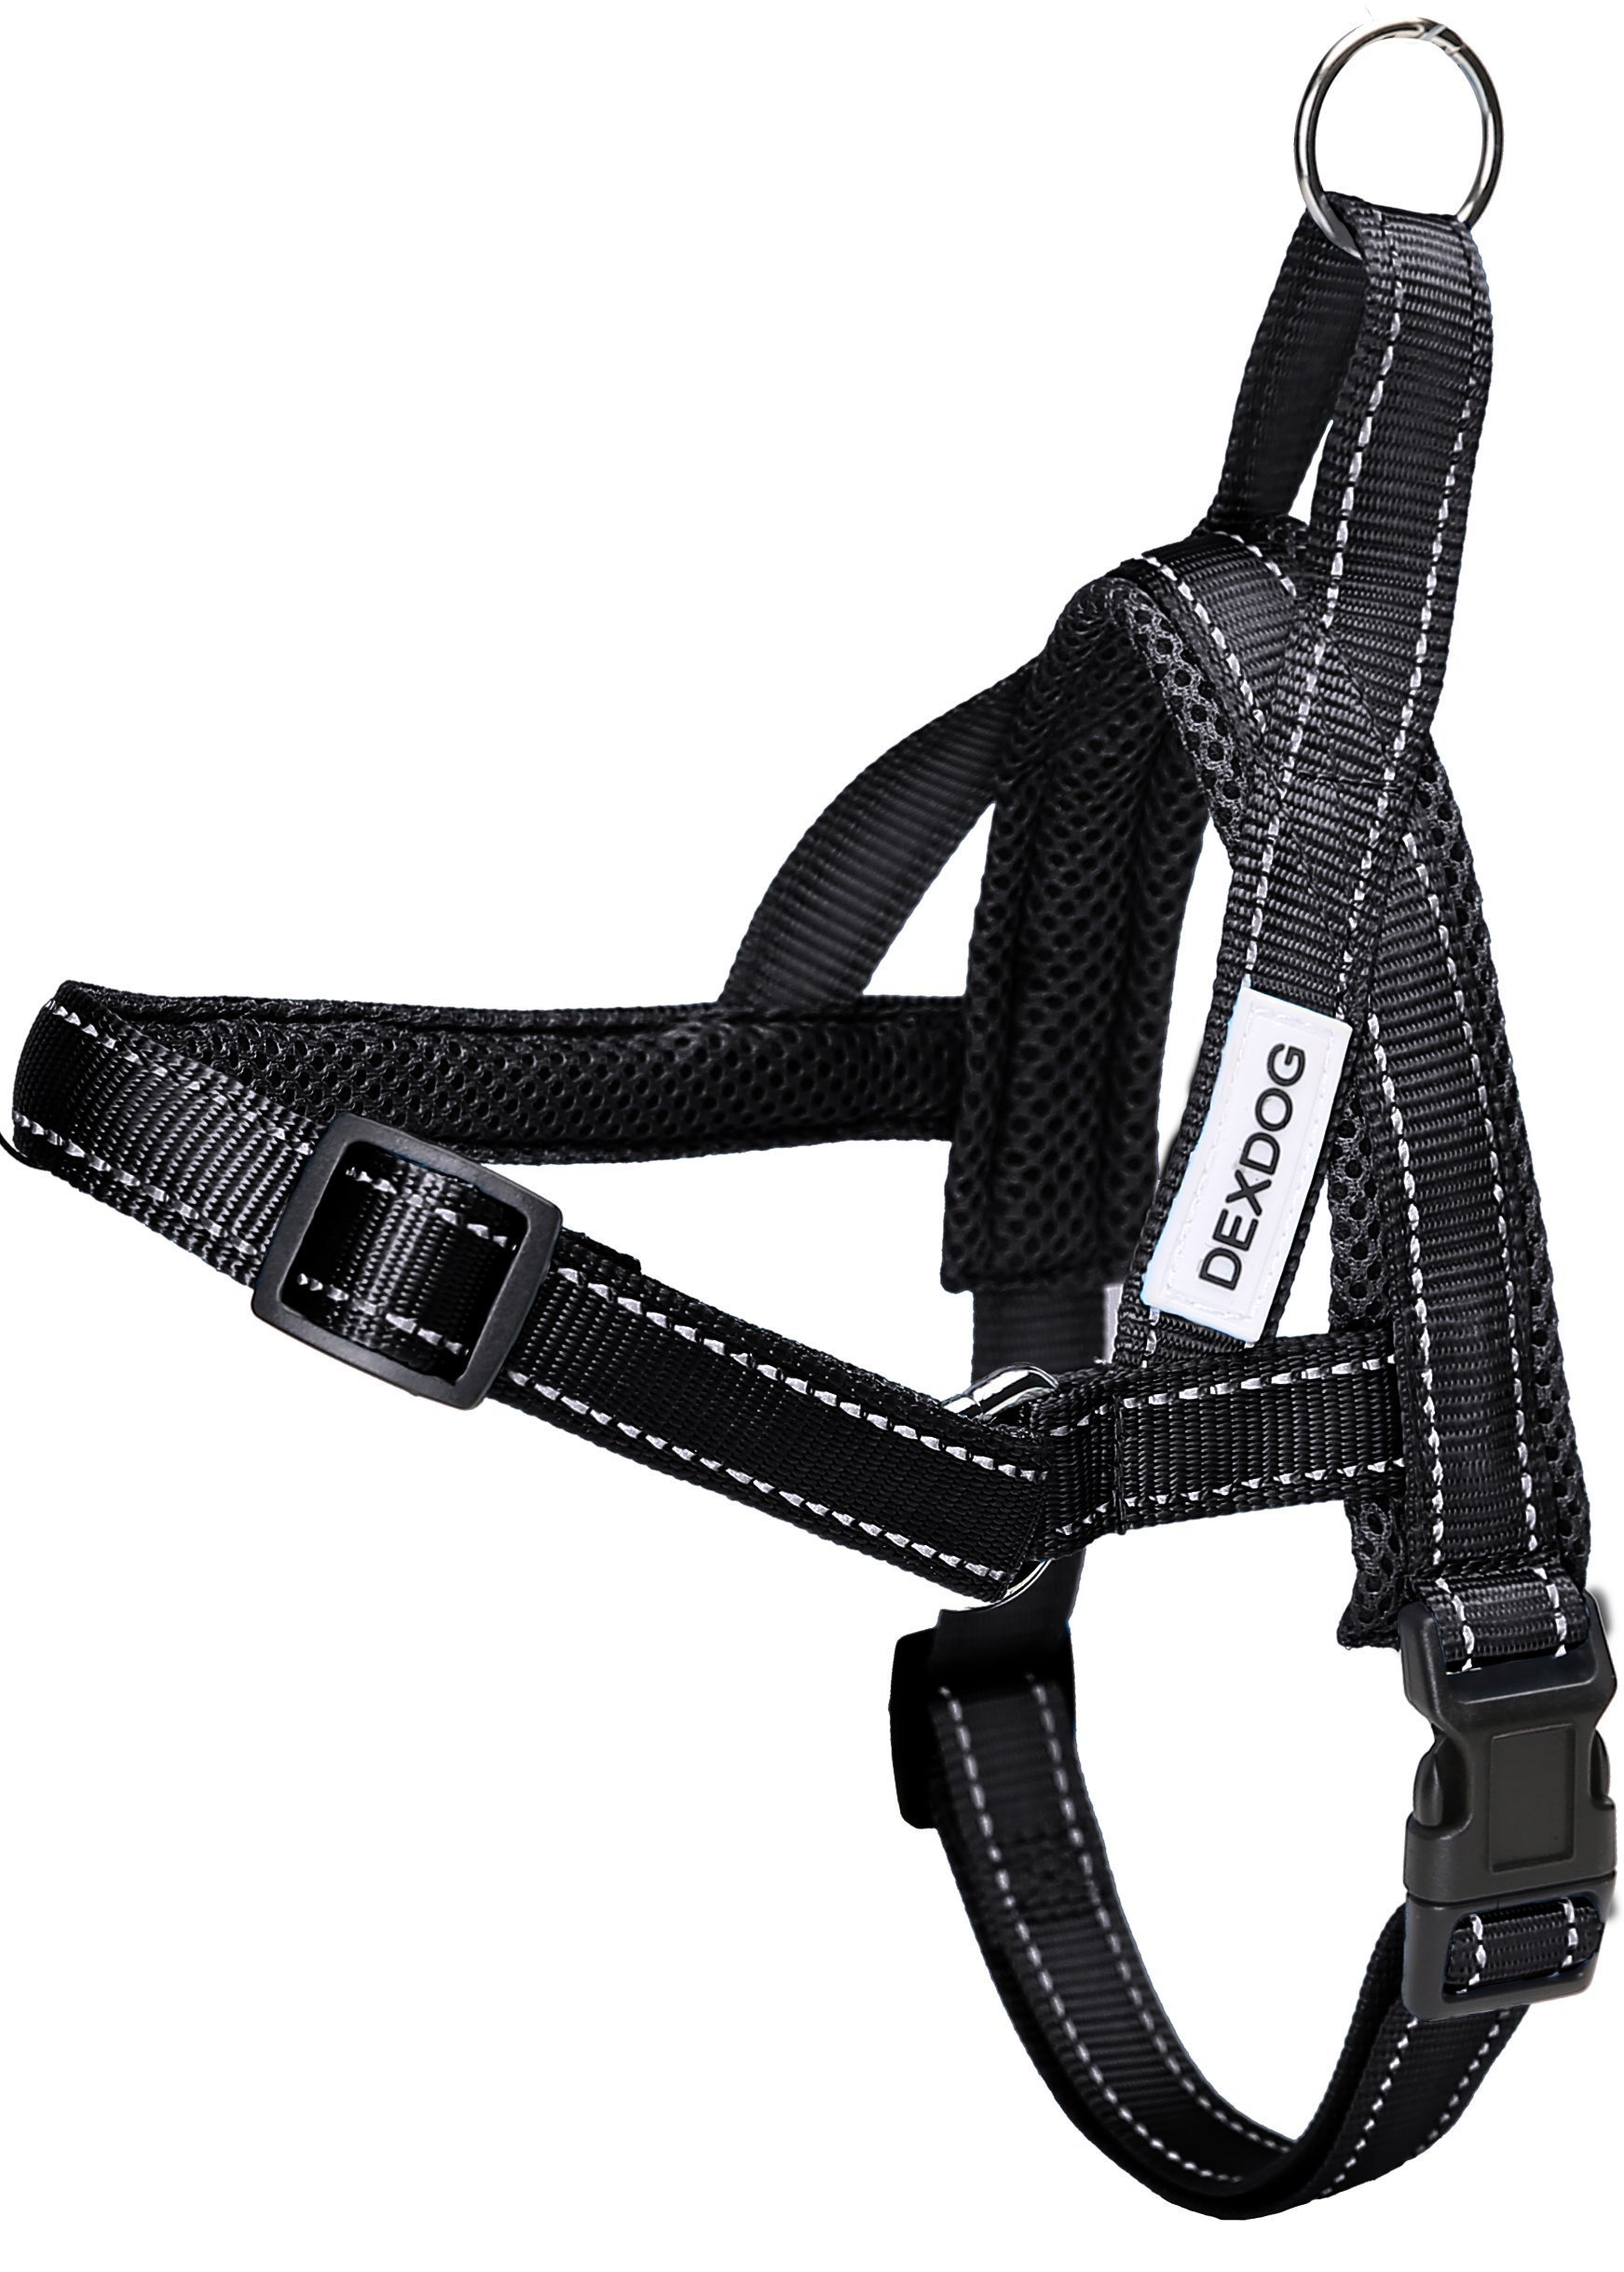 DEXDOG #1 Best Dog Harness — EZHarness by On/Off Walk in Seconds! [Black Large L] — Easy Quicker Step In Dog Harness Vest — Puppy Reflective Mesh Handle Adjustable Training